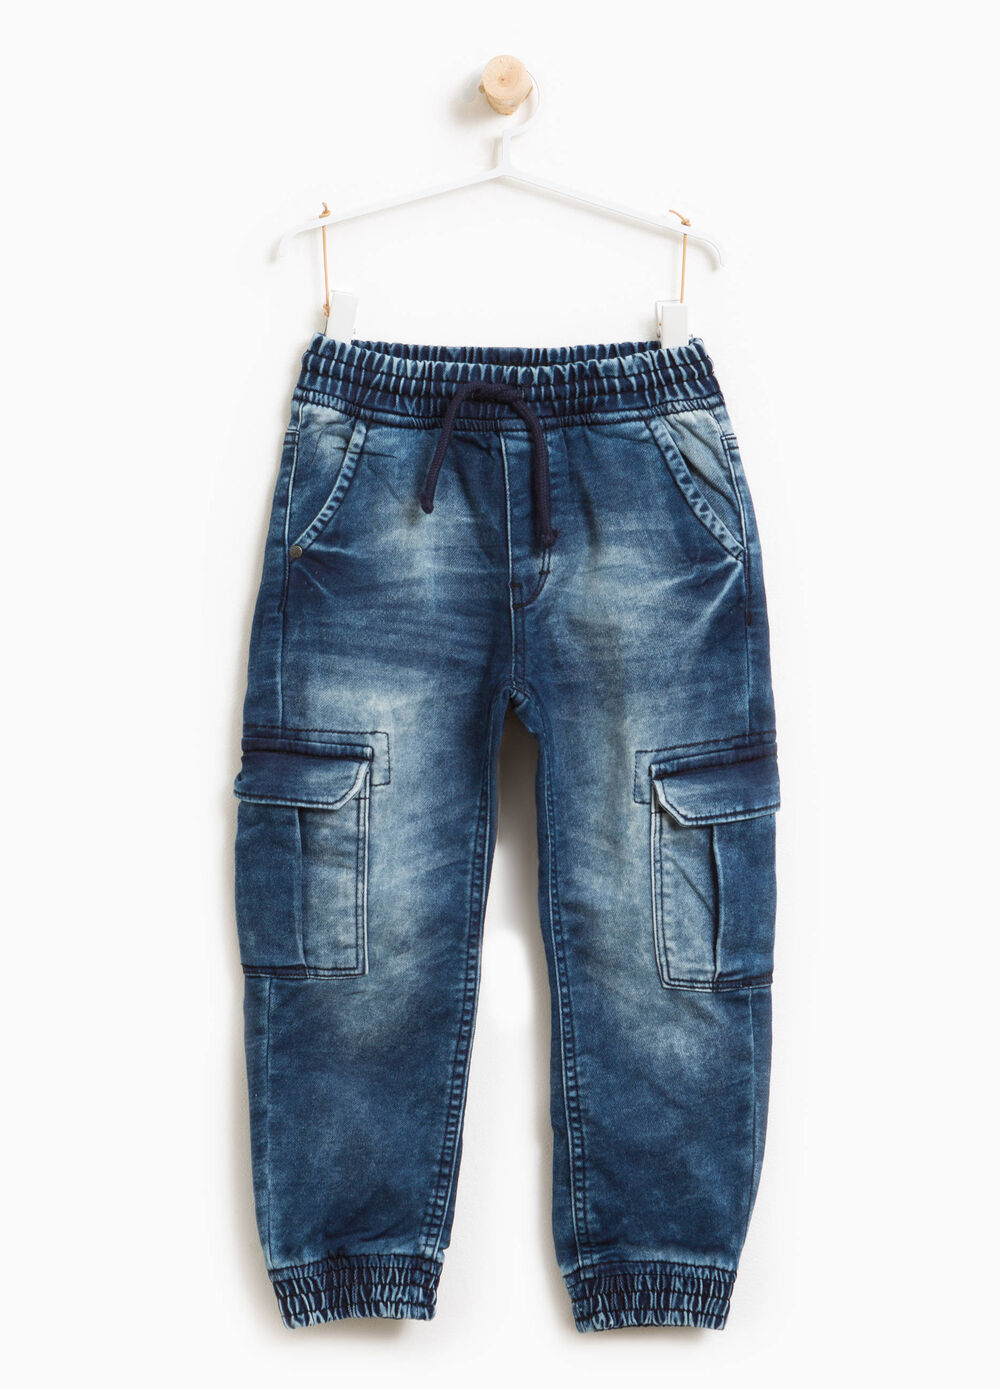 Worn-effect jeans with whiskering